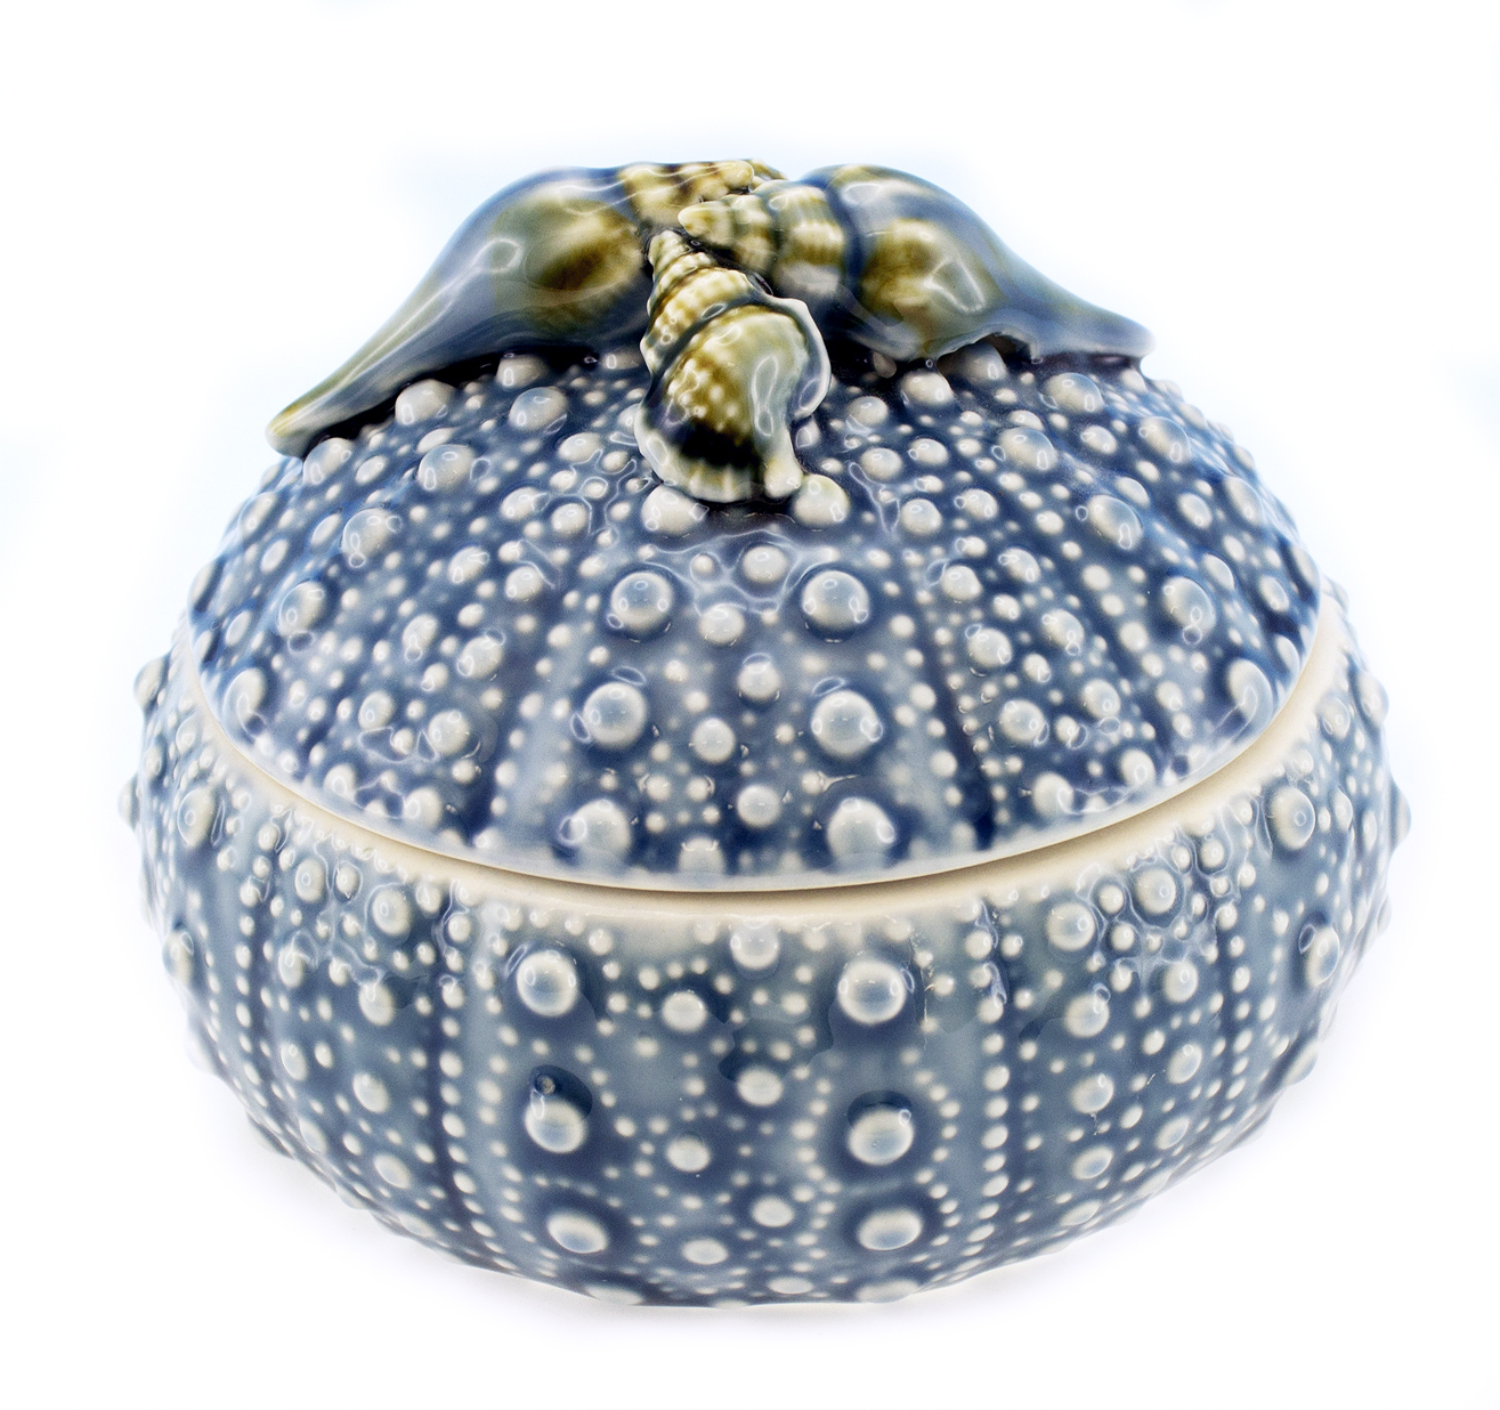 Ocean Blue and White Sea Urchin Trinket Box Topped With Shells Ceramic